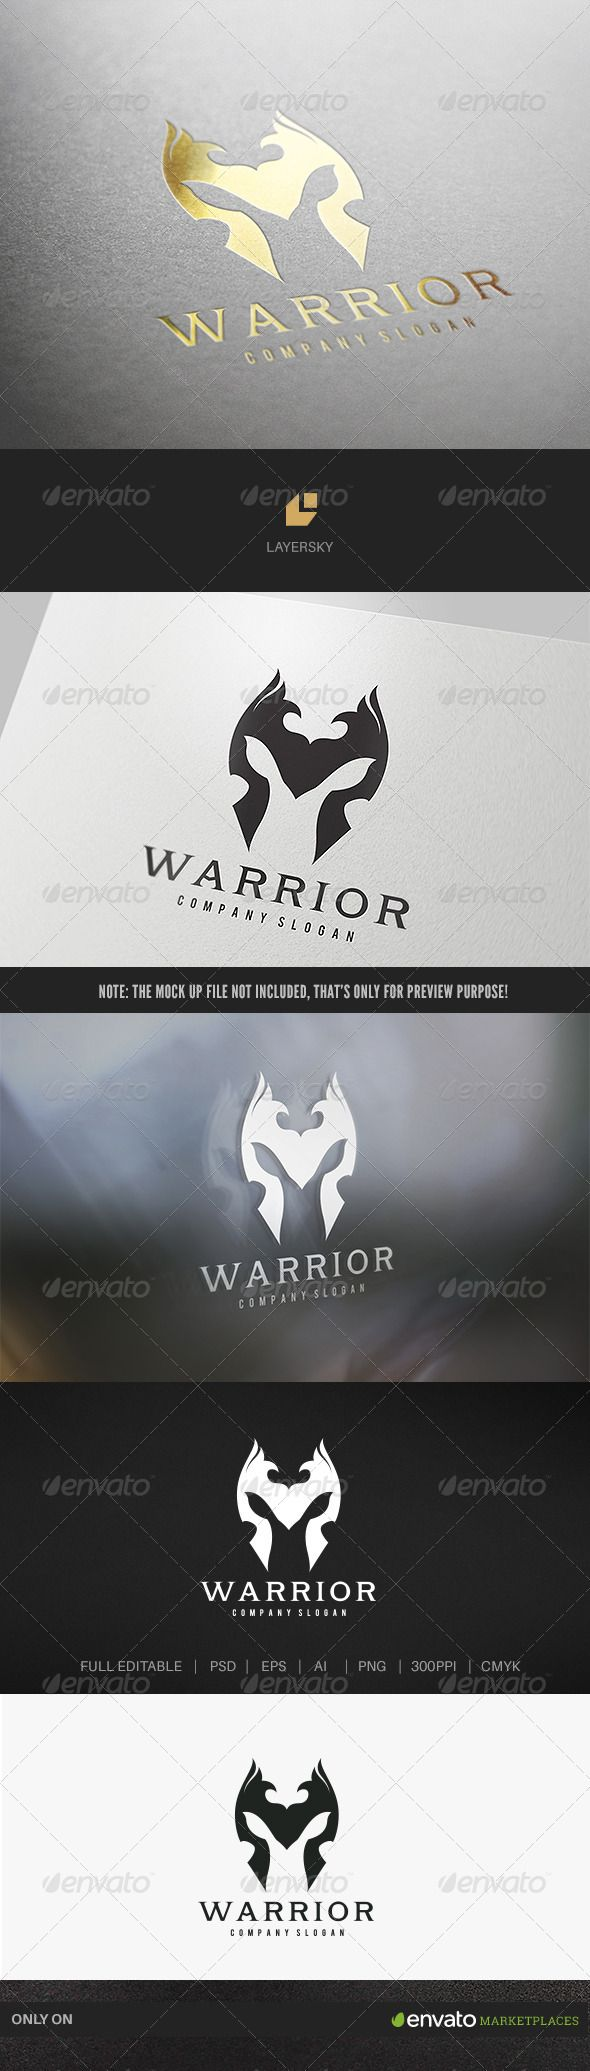 Warrior Logo — Photoshop PSD #Black Tortoise #viking • Available here → https://graphicriver.net/item/warrior-logo/7764566?ref=pxcr